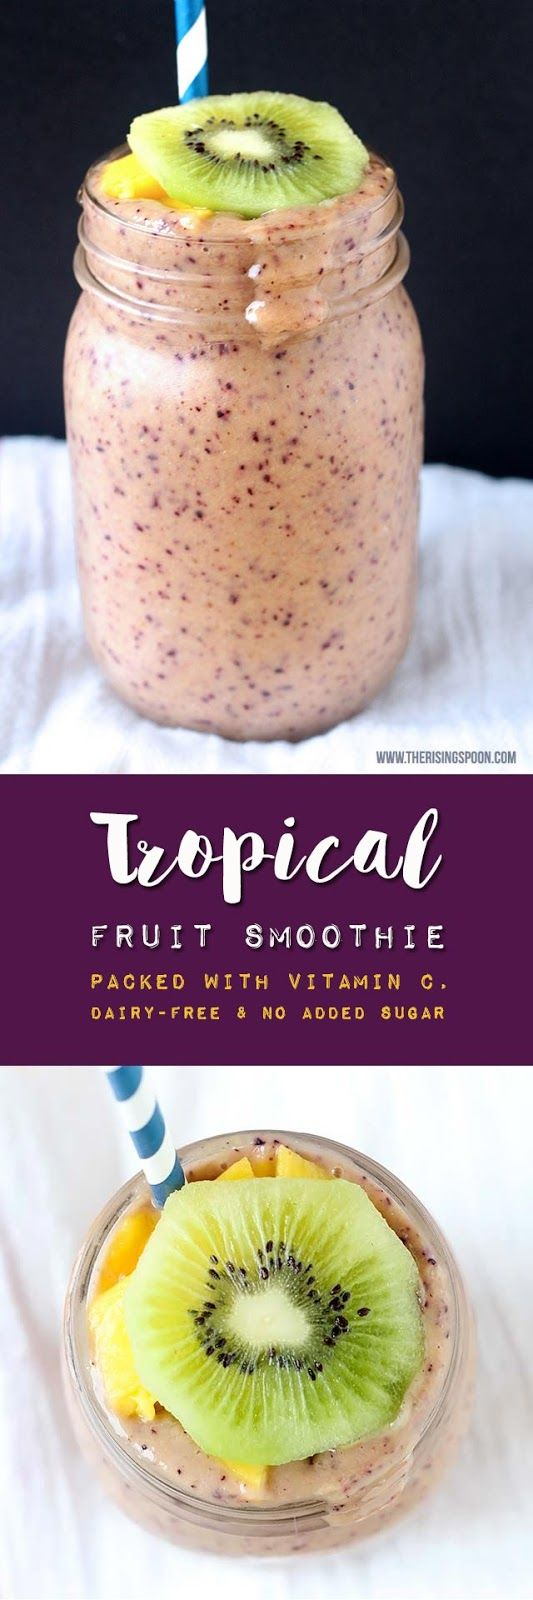 A healthy smoothie recipe with tropical fruits like mango and kiwi (both packed…